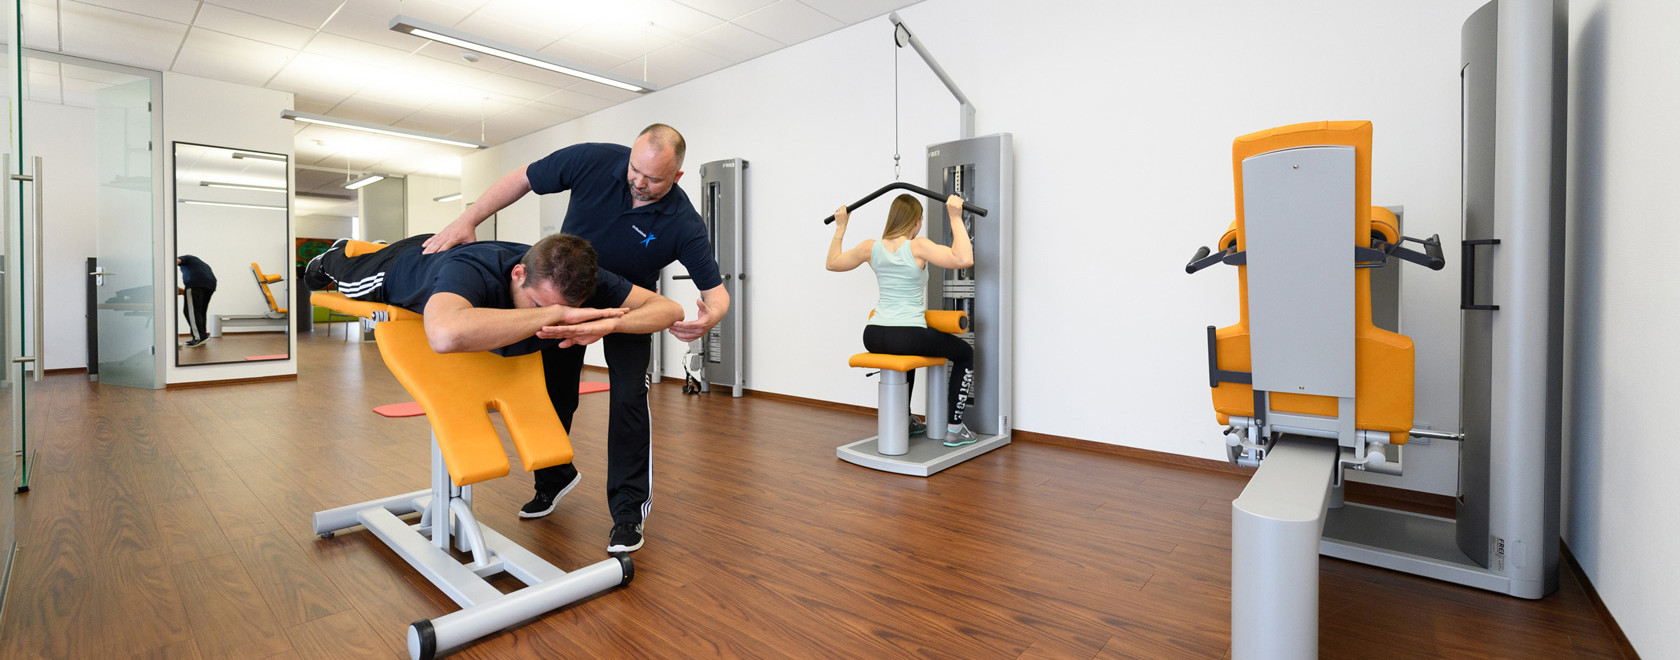 Physiotherapie der Orthoklinik